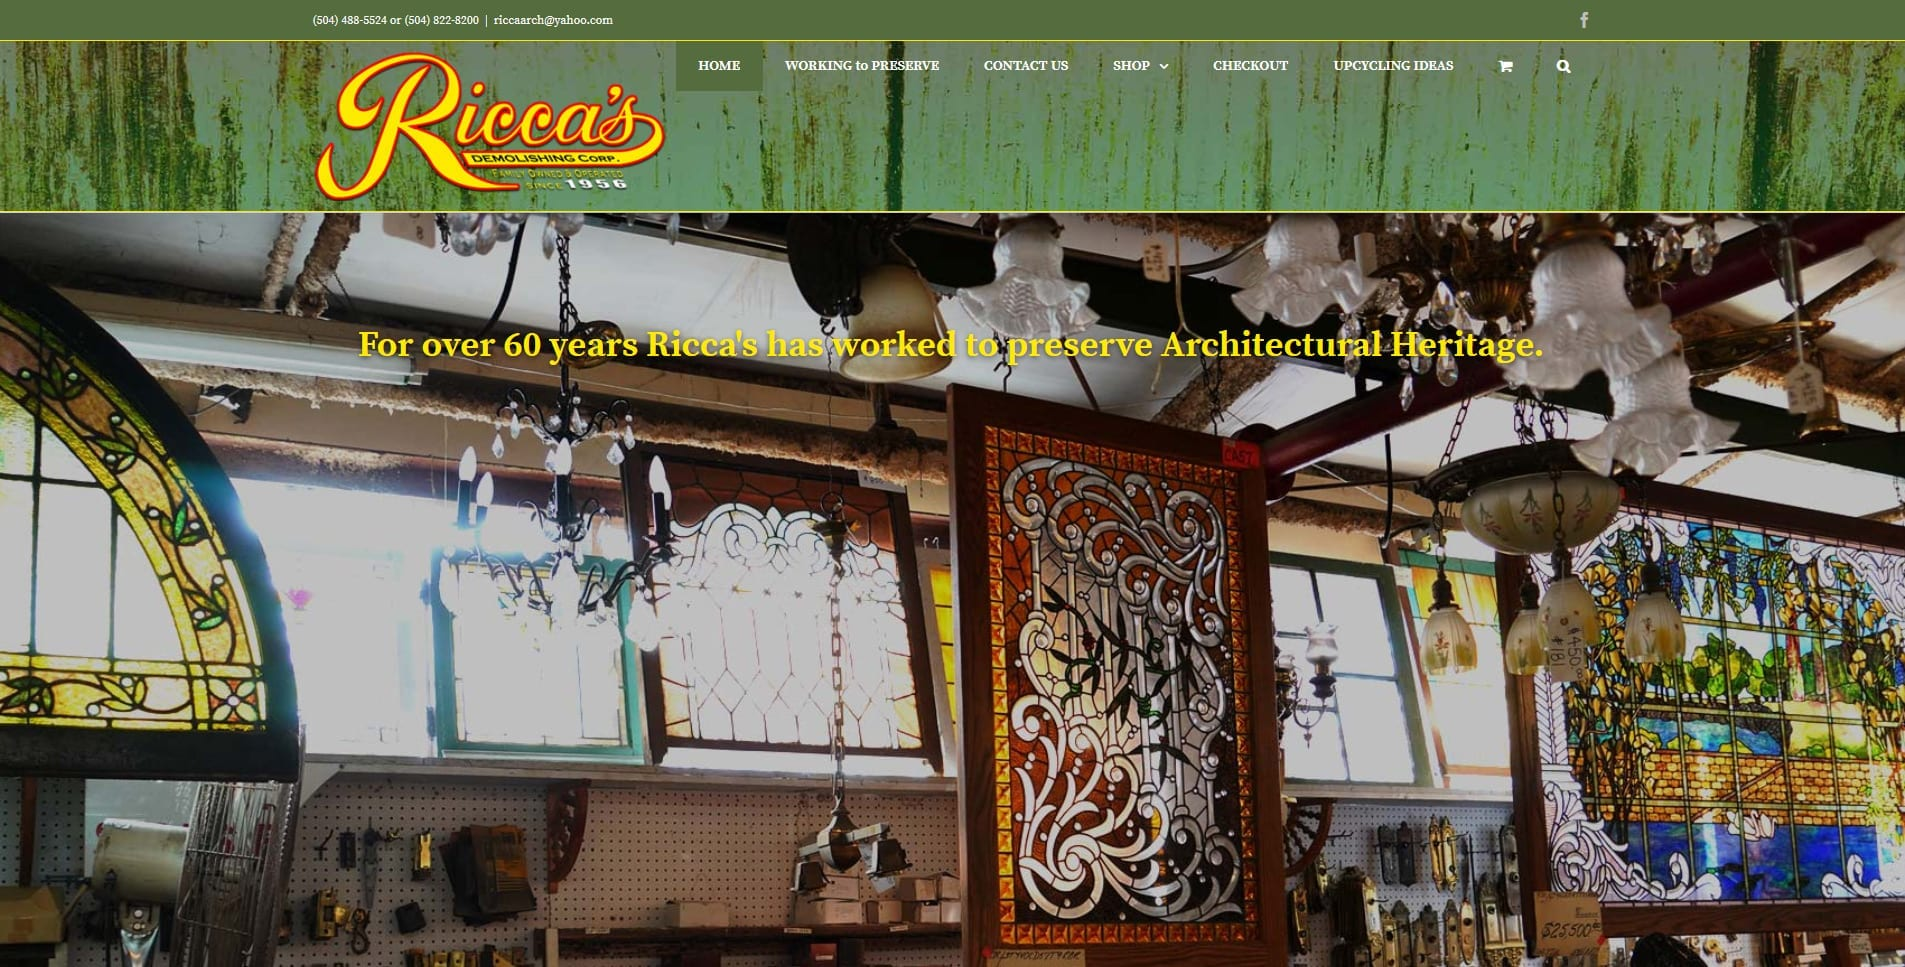 Ricca's Architectural Store